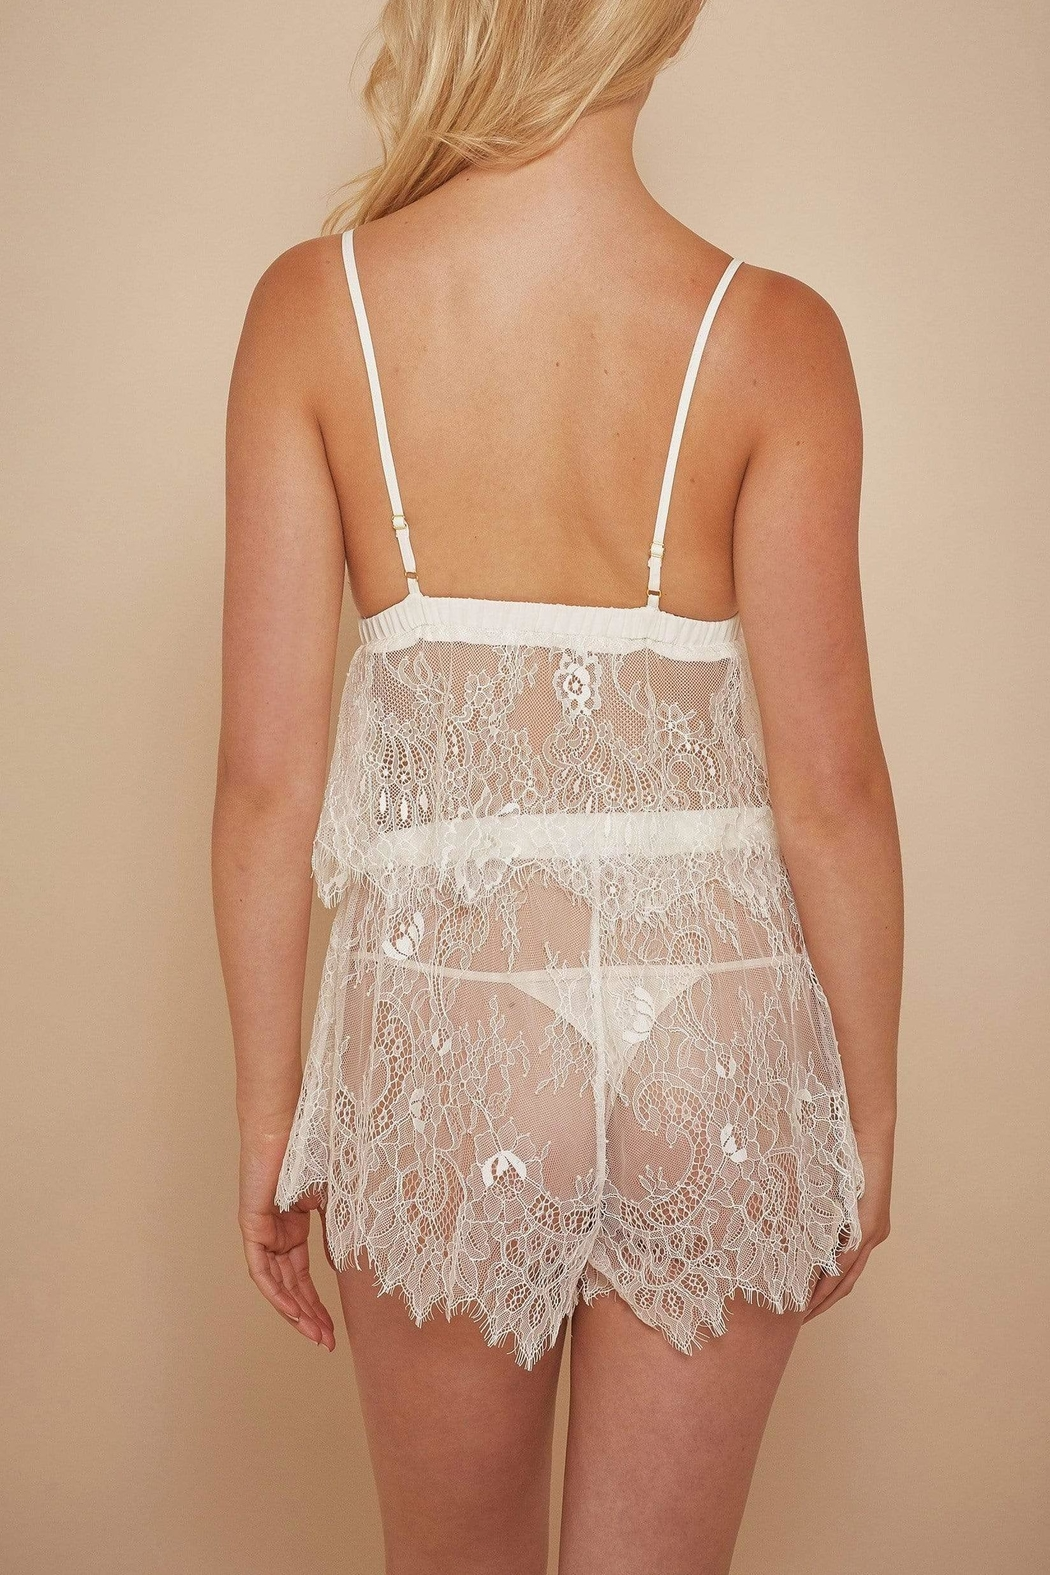 Wolf & Whistle Alexia Lace Set - Front Full Image